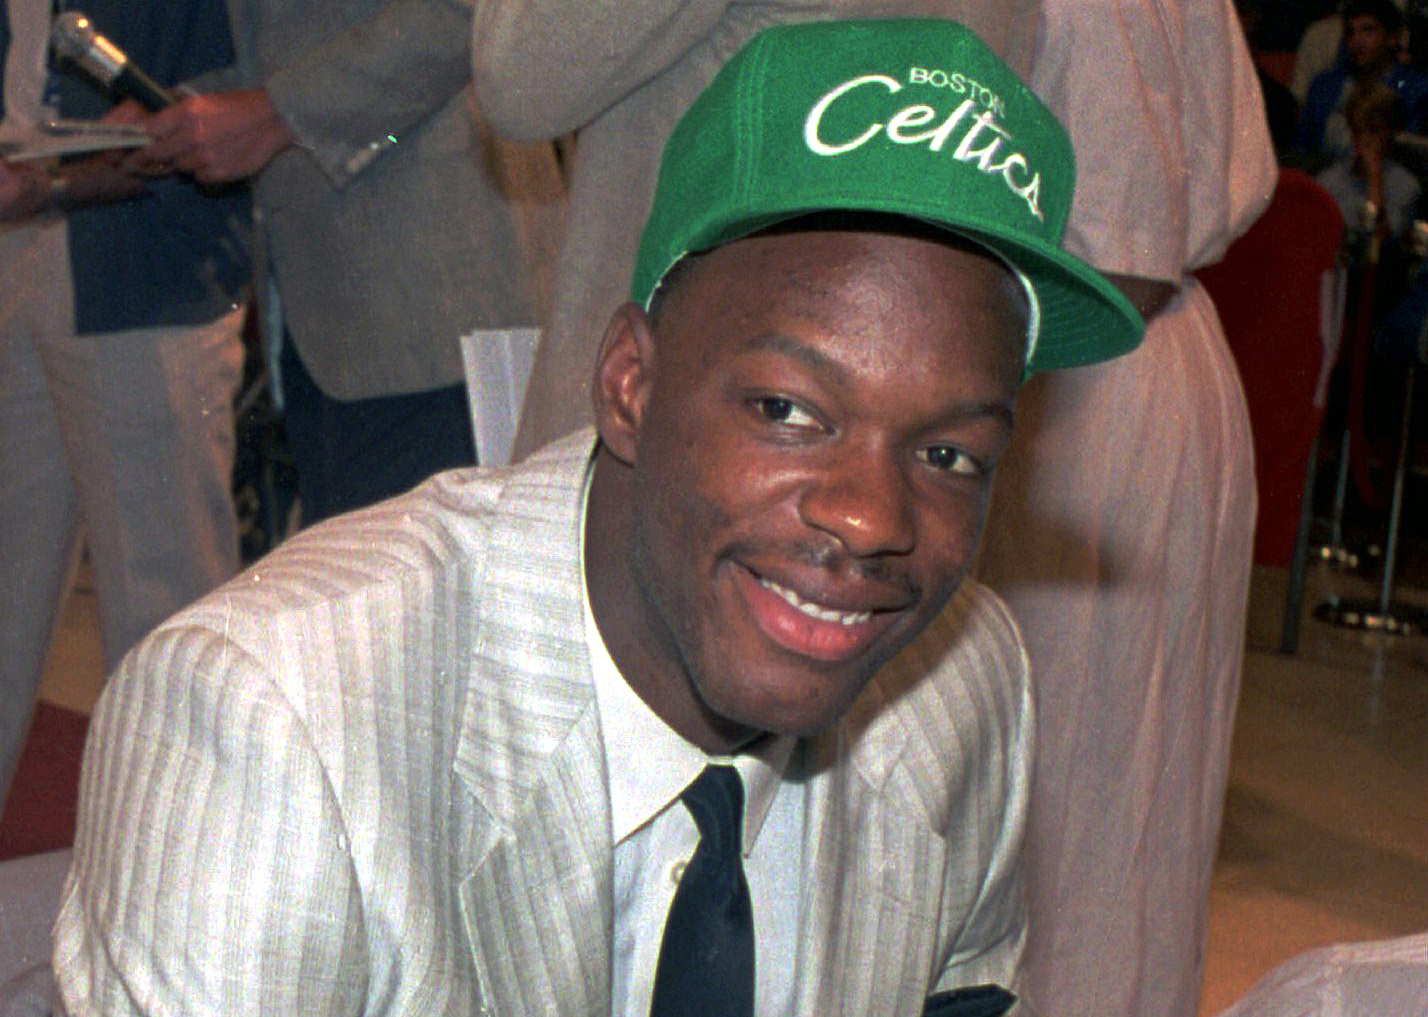 Len Bias wears a Boston Celtics hat after being selected as the No. 2 pick in the NBA draft in New York, June 17, 1986.